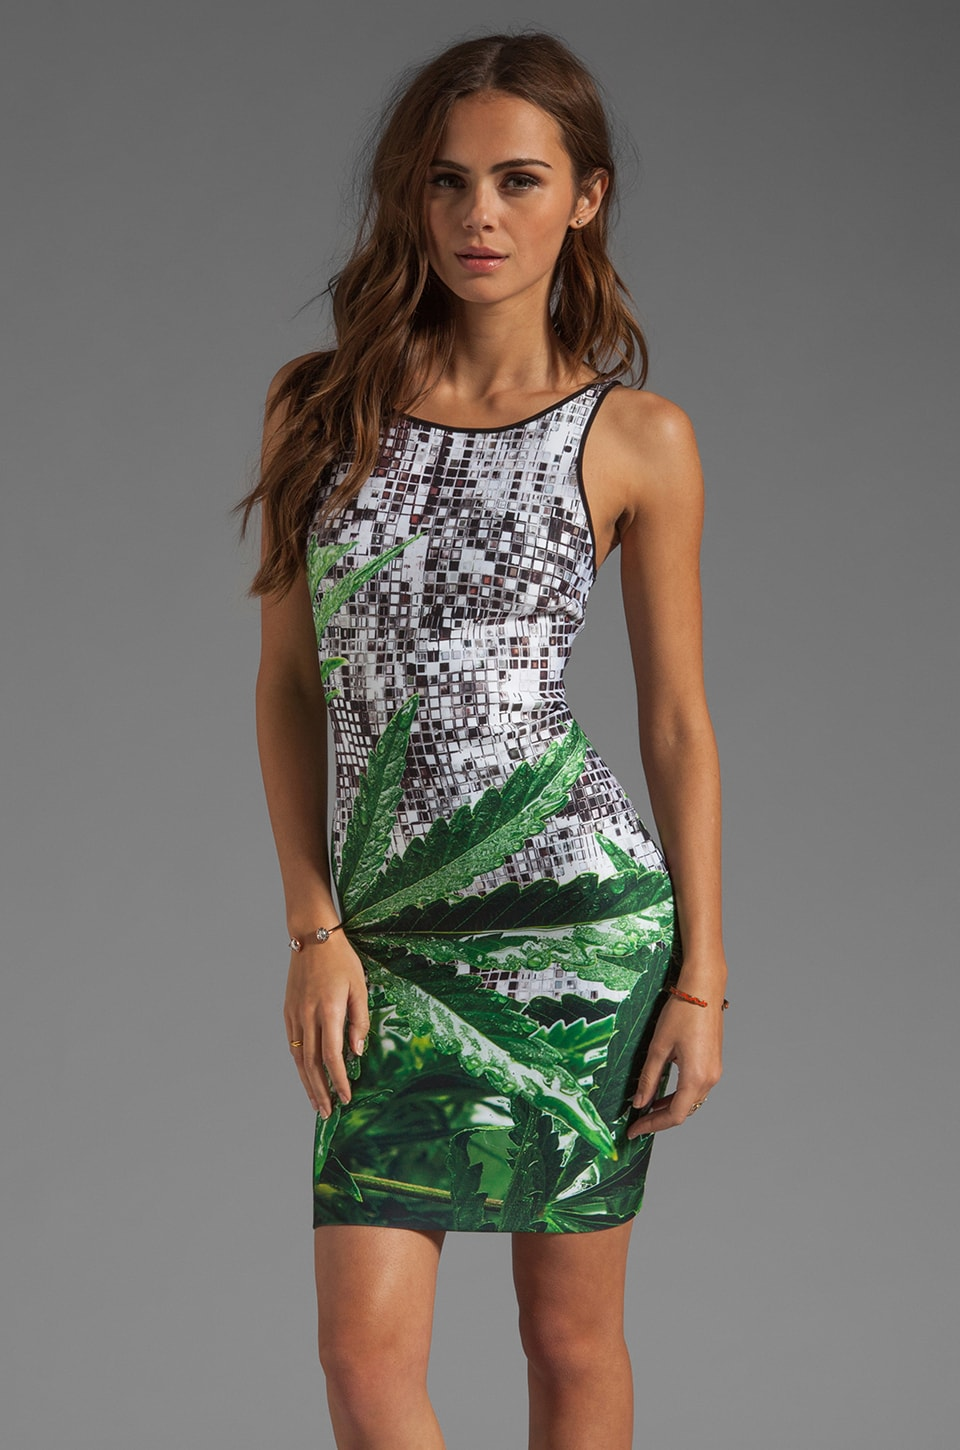 Clover Canyon EXCLUSIVE How High Neoprene Dress in Multi